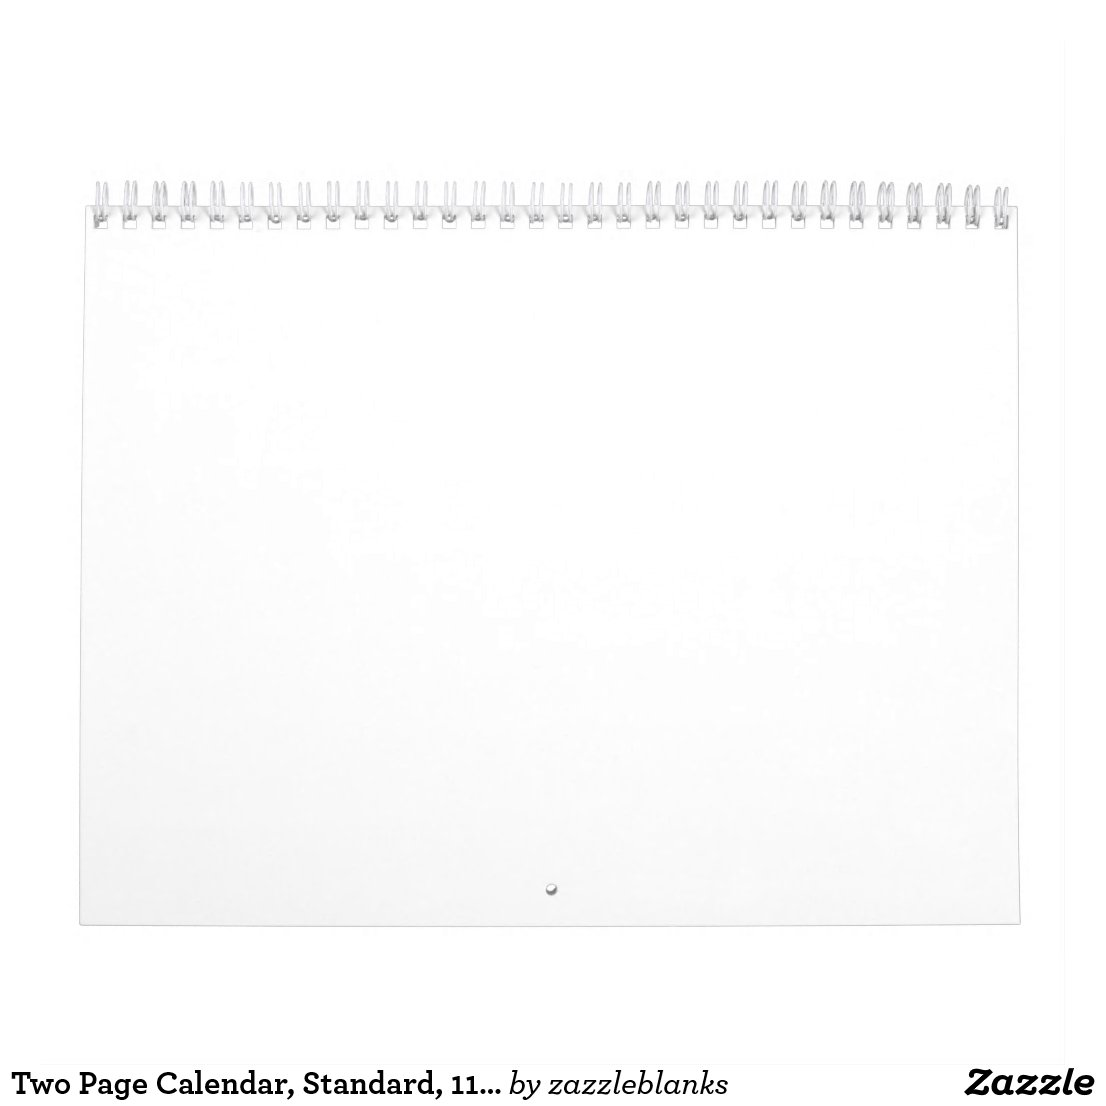 Two Page Calendar, Standard